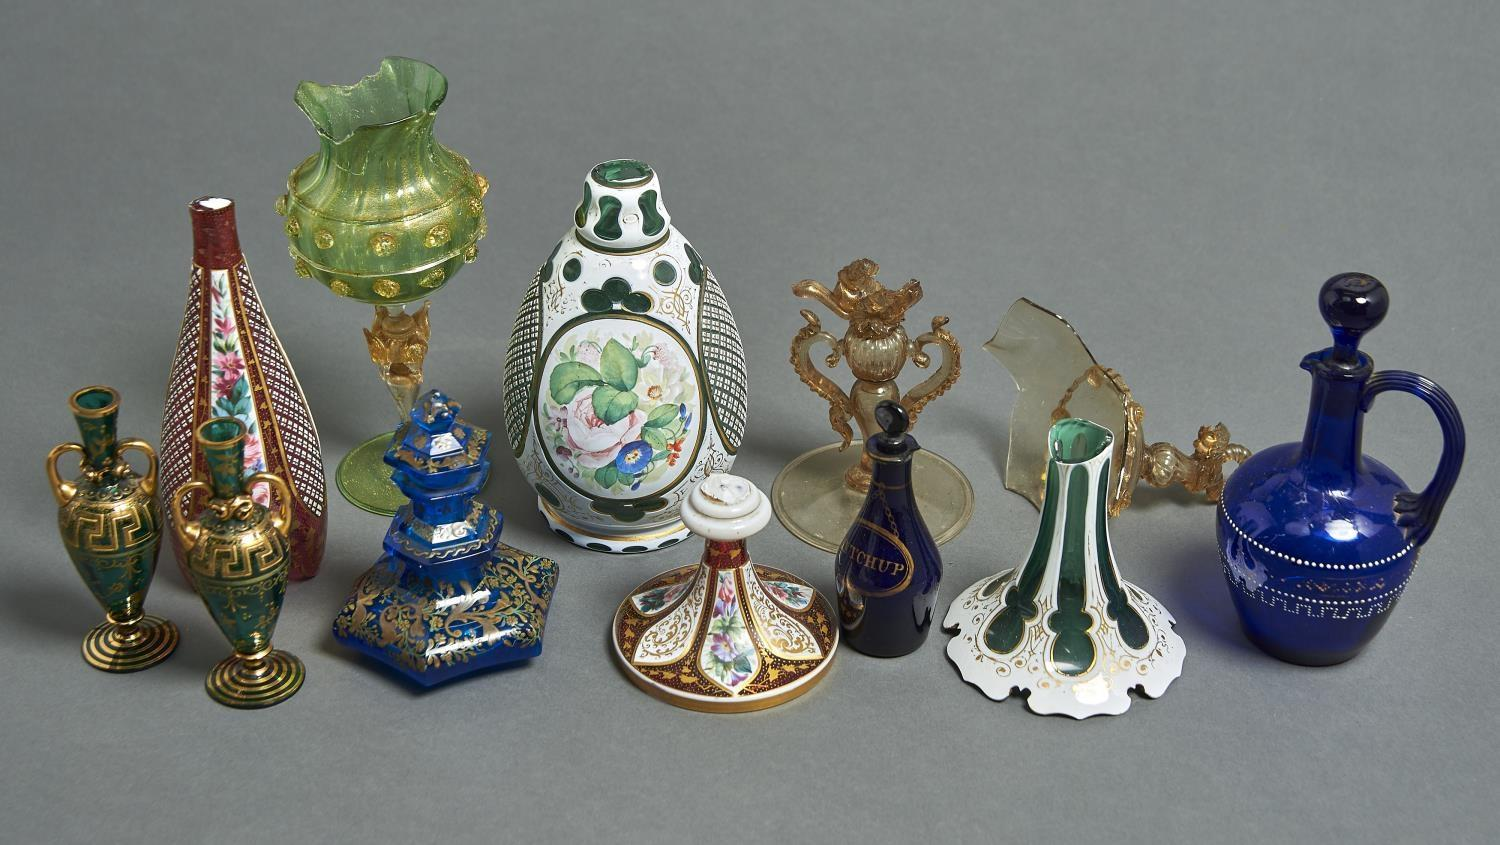 A BOHEMIAN ENAMELLED TEAL BLUE GLASS SCENT BOTTLE AND STOPPER, C1860-70, OF HEXAGONAL SHAPE, 13CM